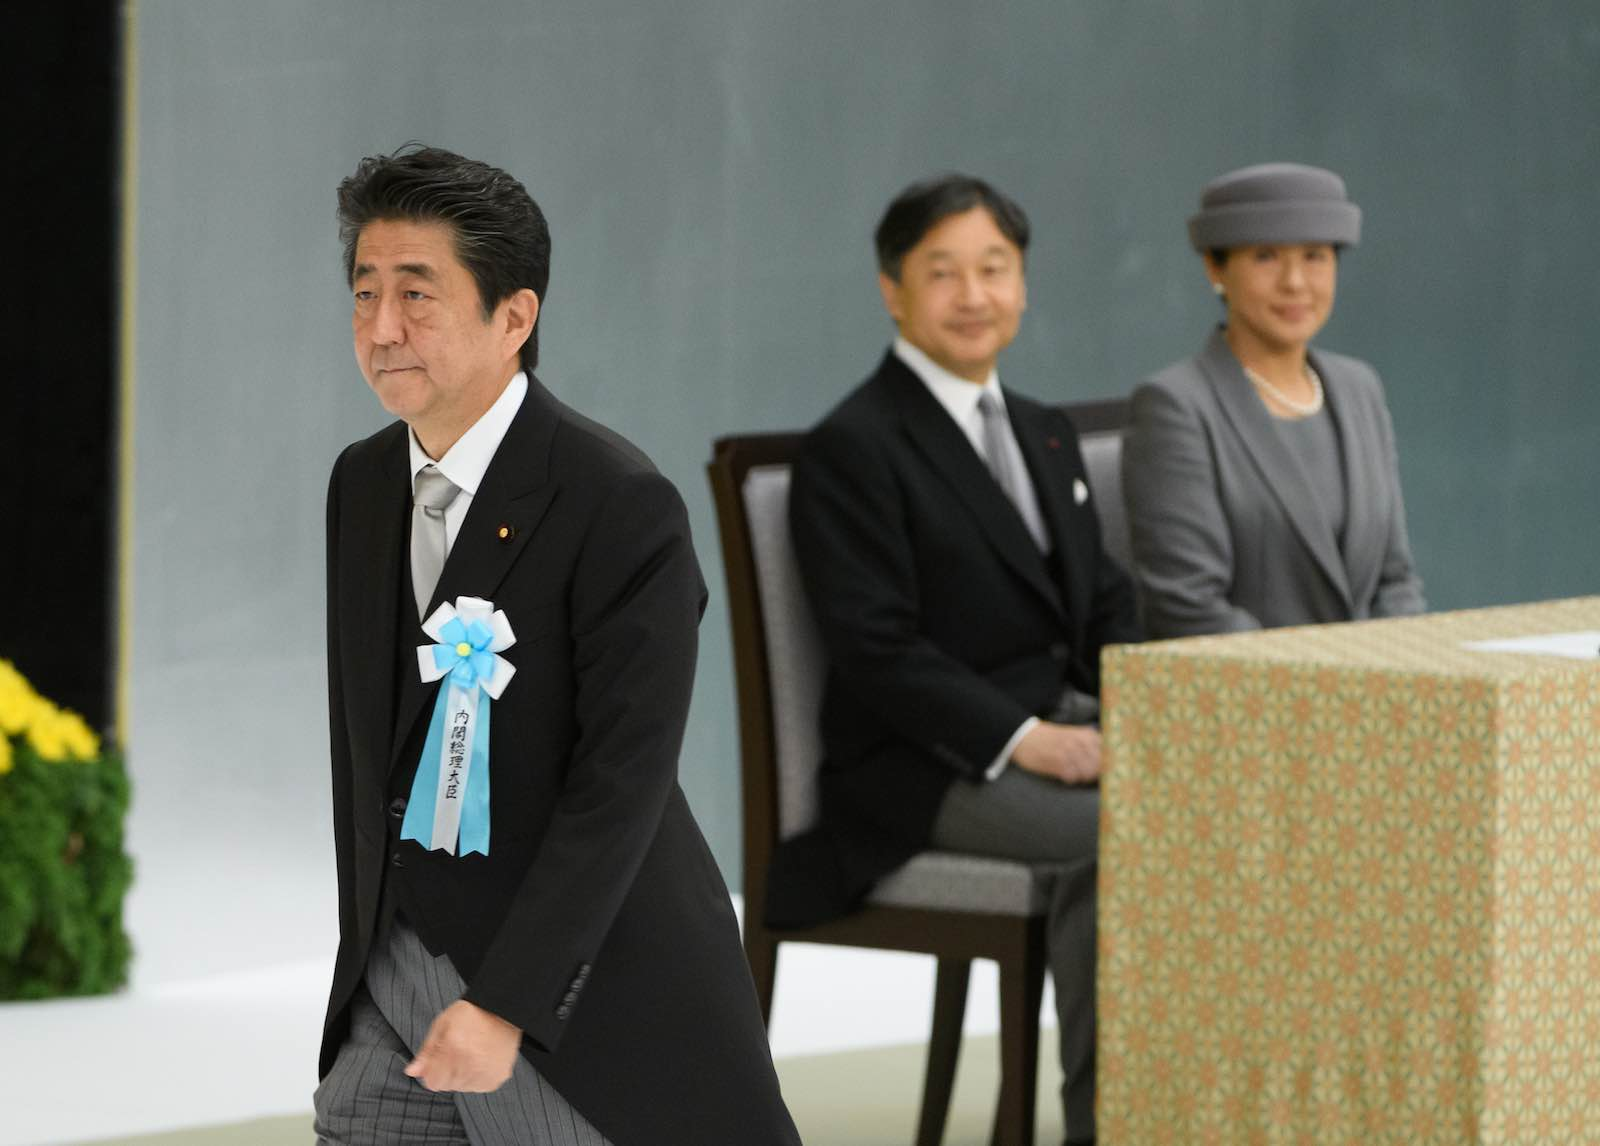 Japanese PM Shinzo Abe walks past Emperor Naruhito and Empress Masako during a service to mark the 74th anniversary of the end of the Second World War, Tokyo, 15 August 2019 (Photo: Akio Kon via Getty)